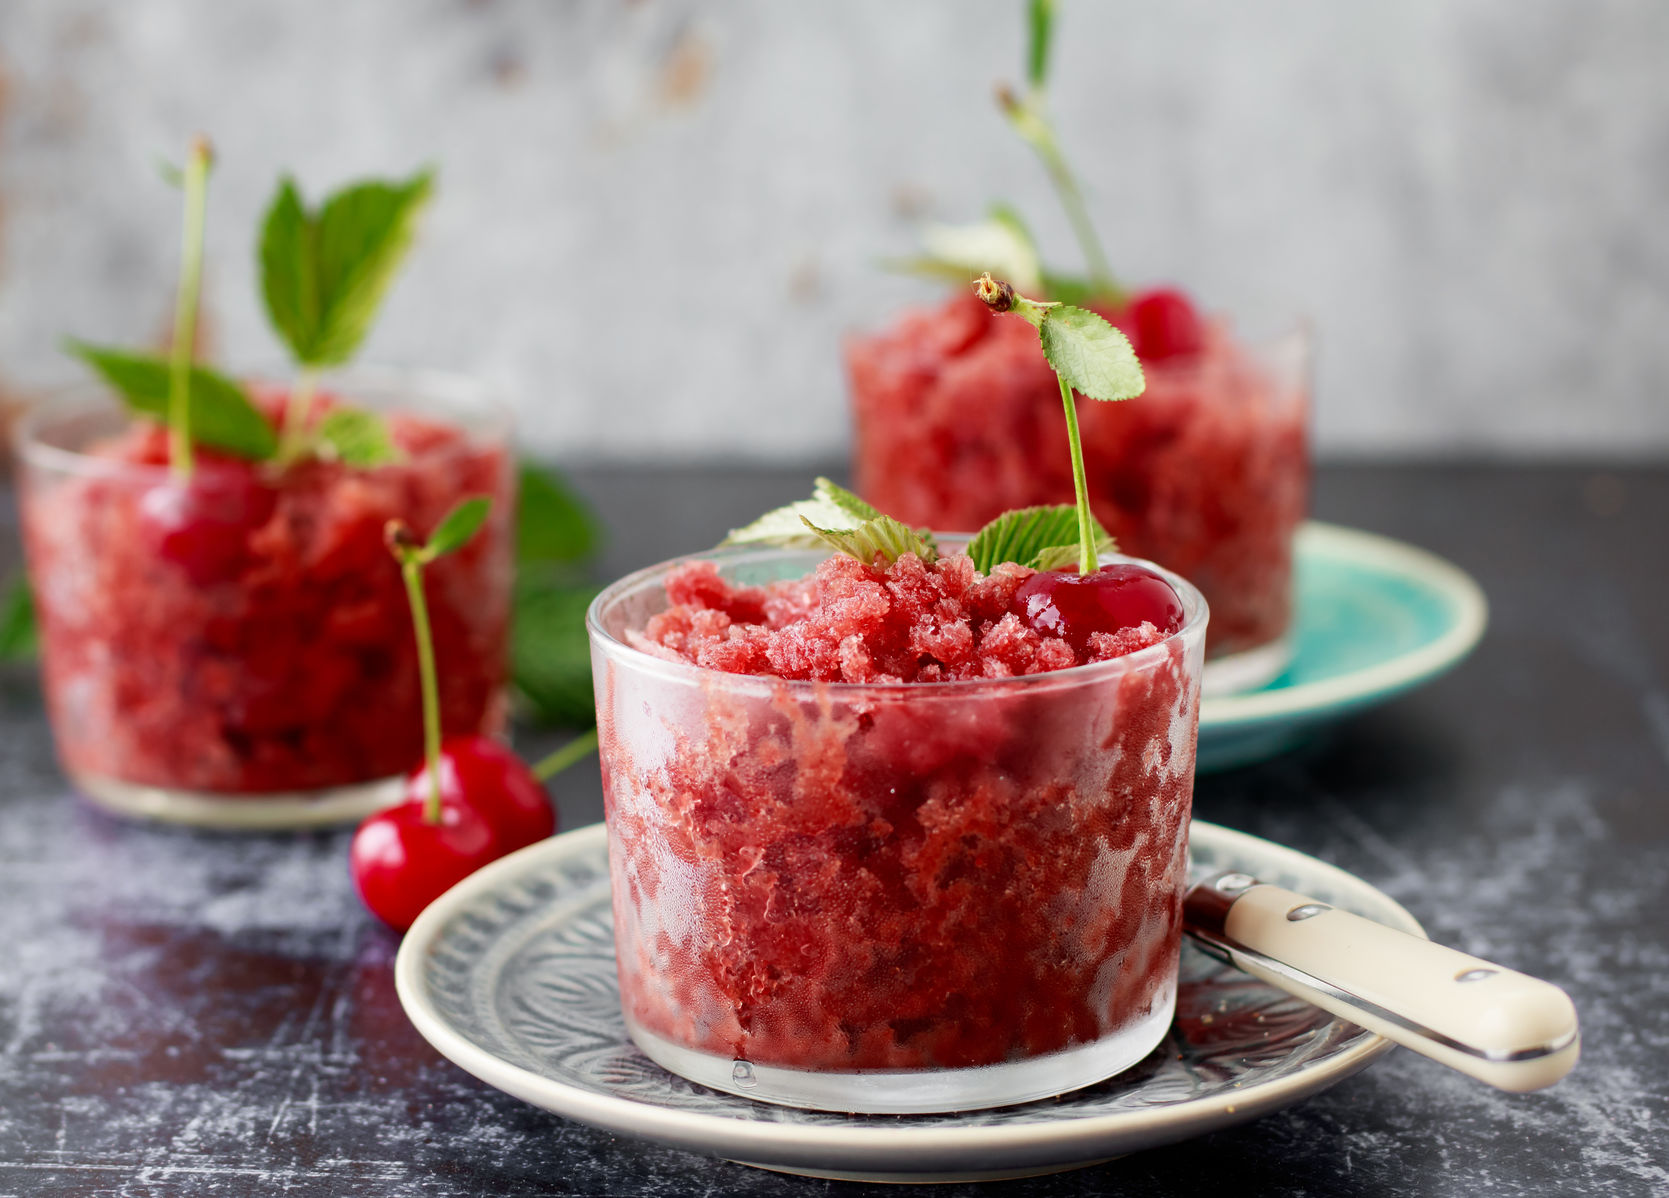 Homemade sour cherry and blackberry granita